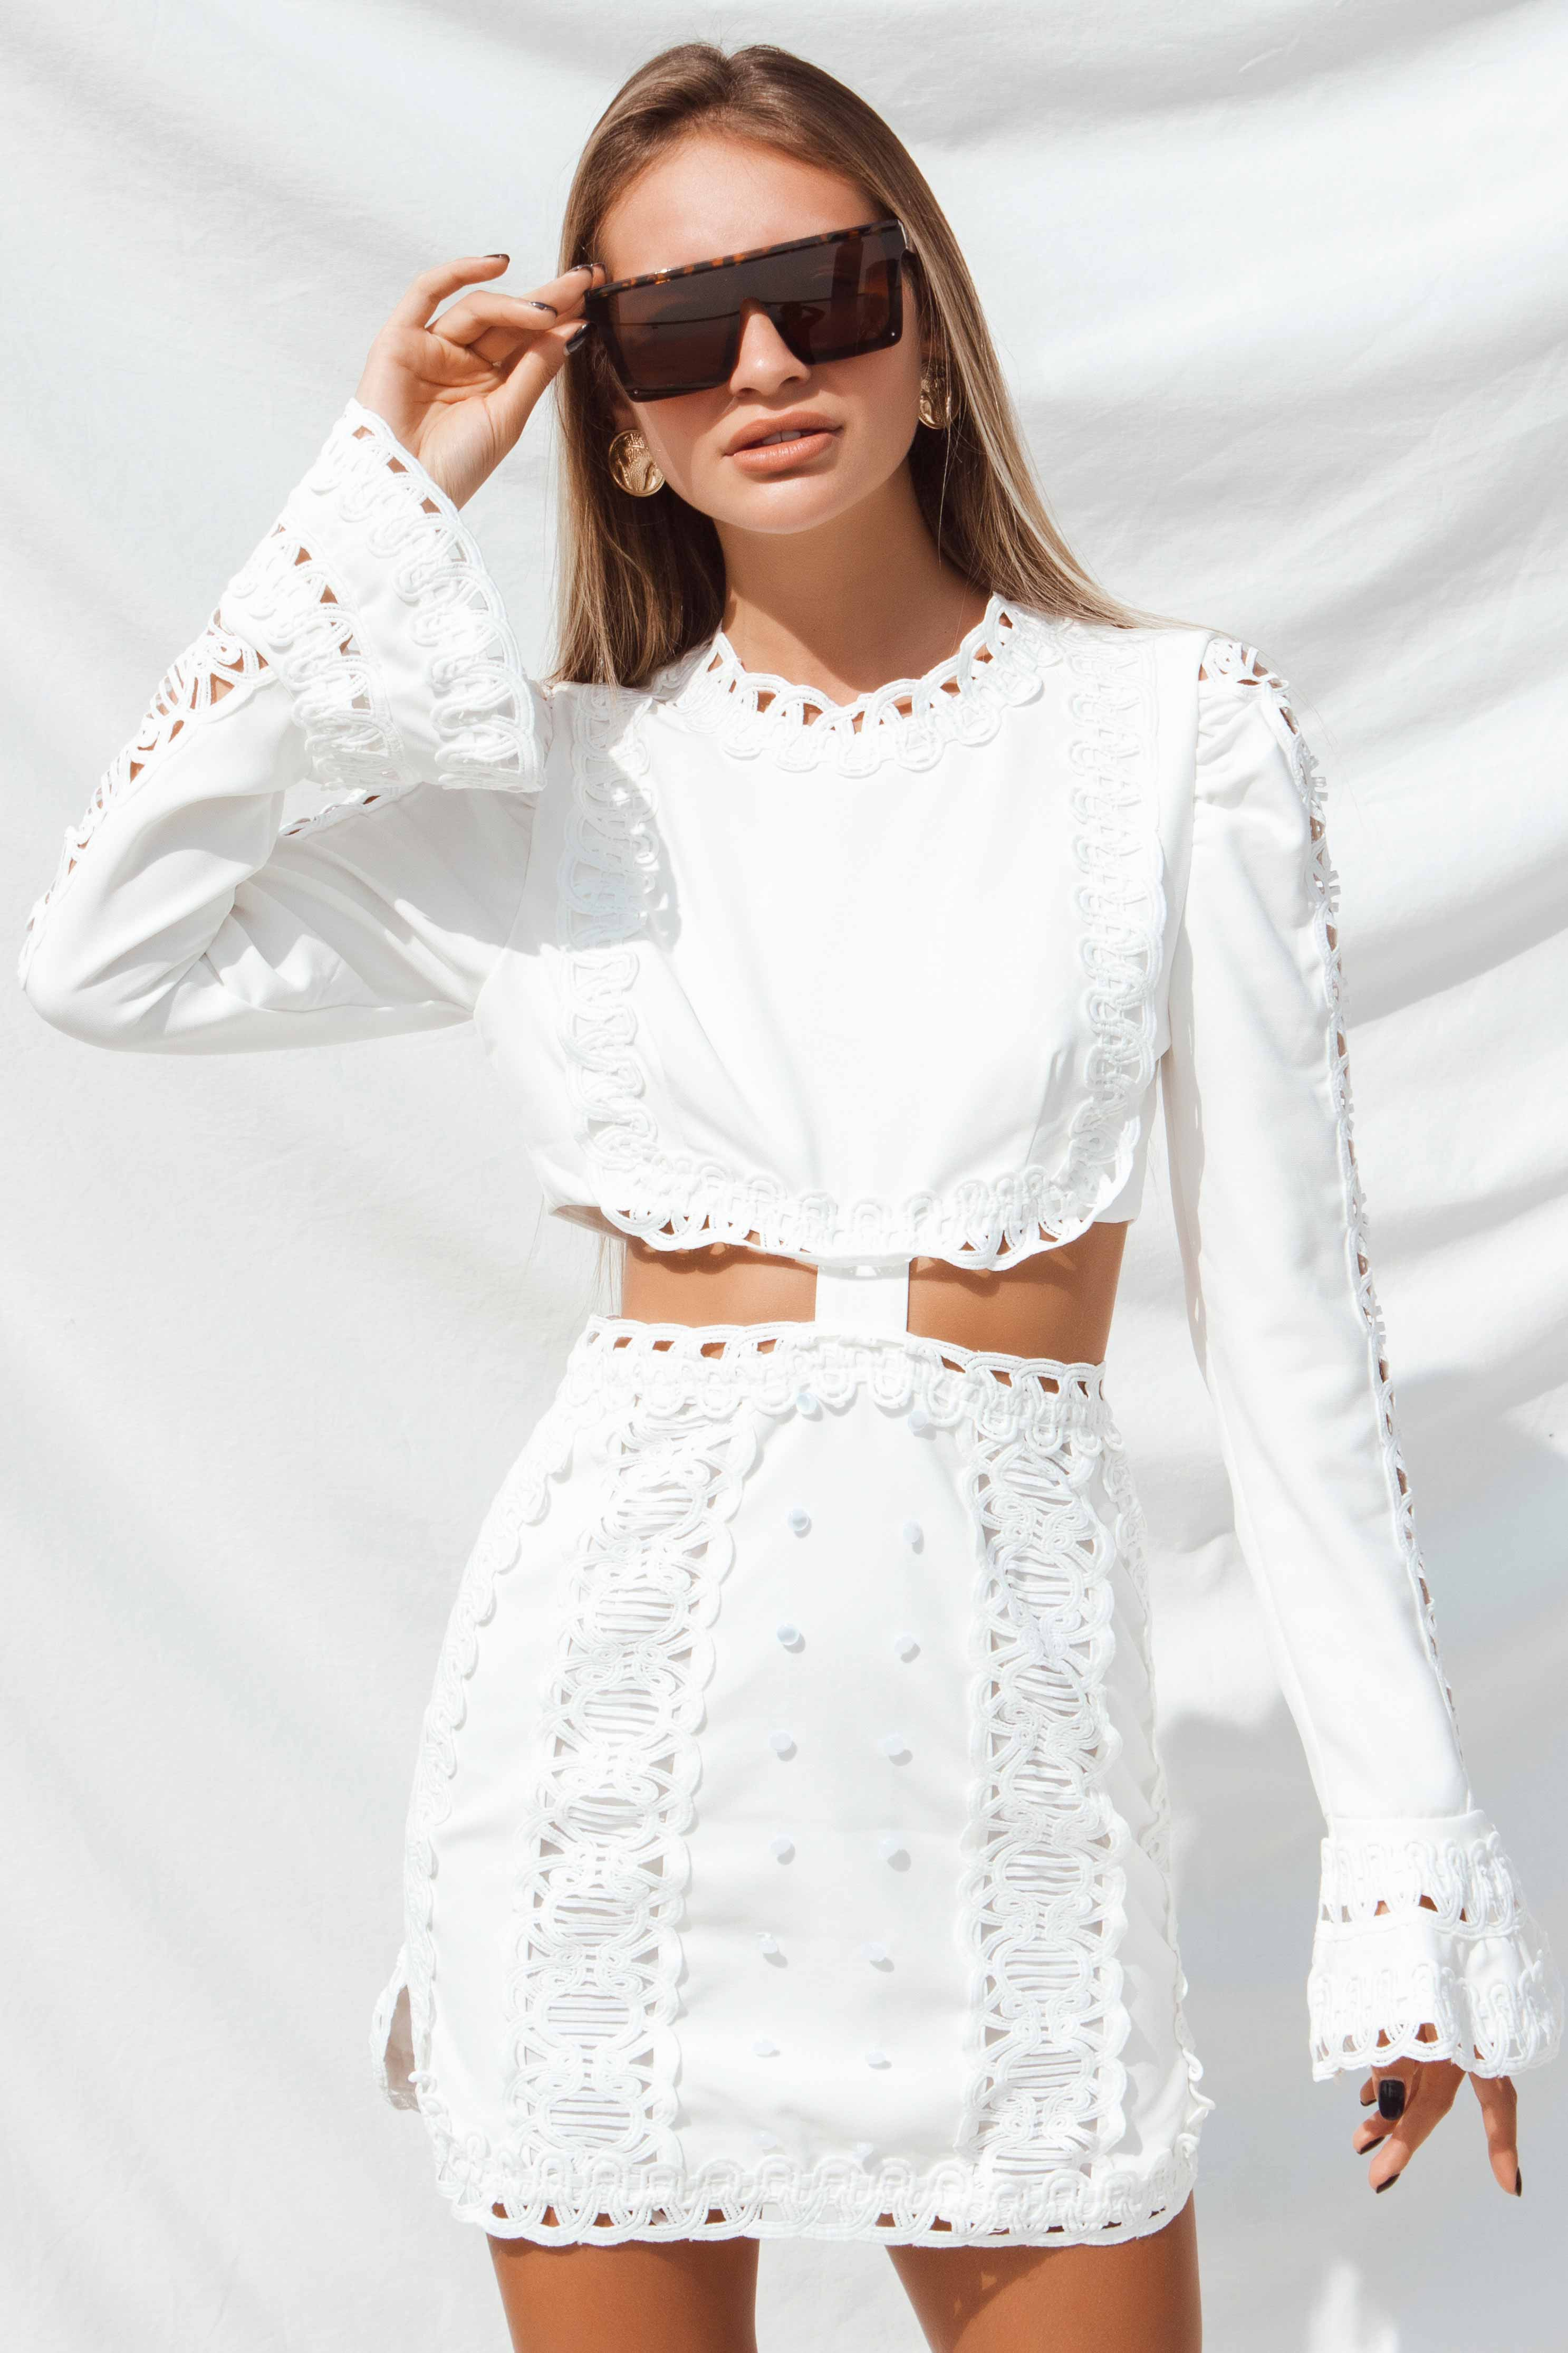 CAROLINA DRESS IN WHITE | Women's Online Shopping | CHICLEFRIQUE  (4323466707033)